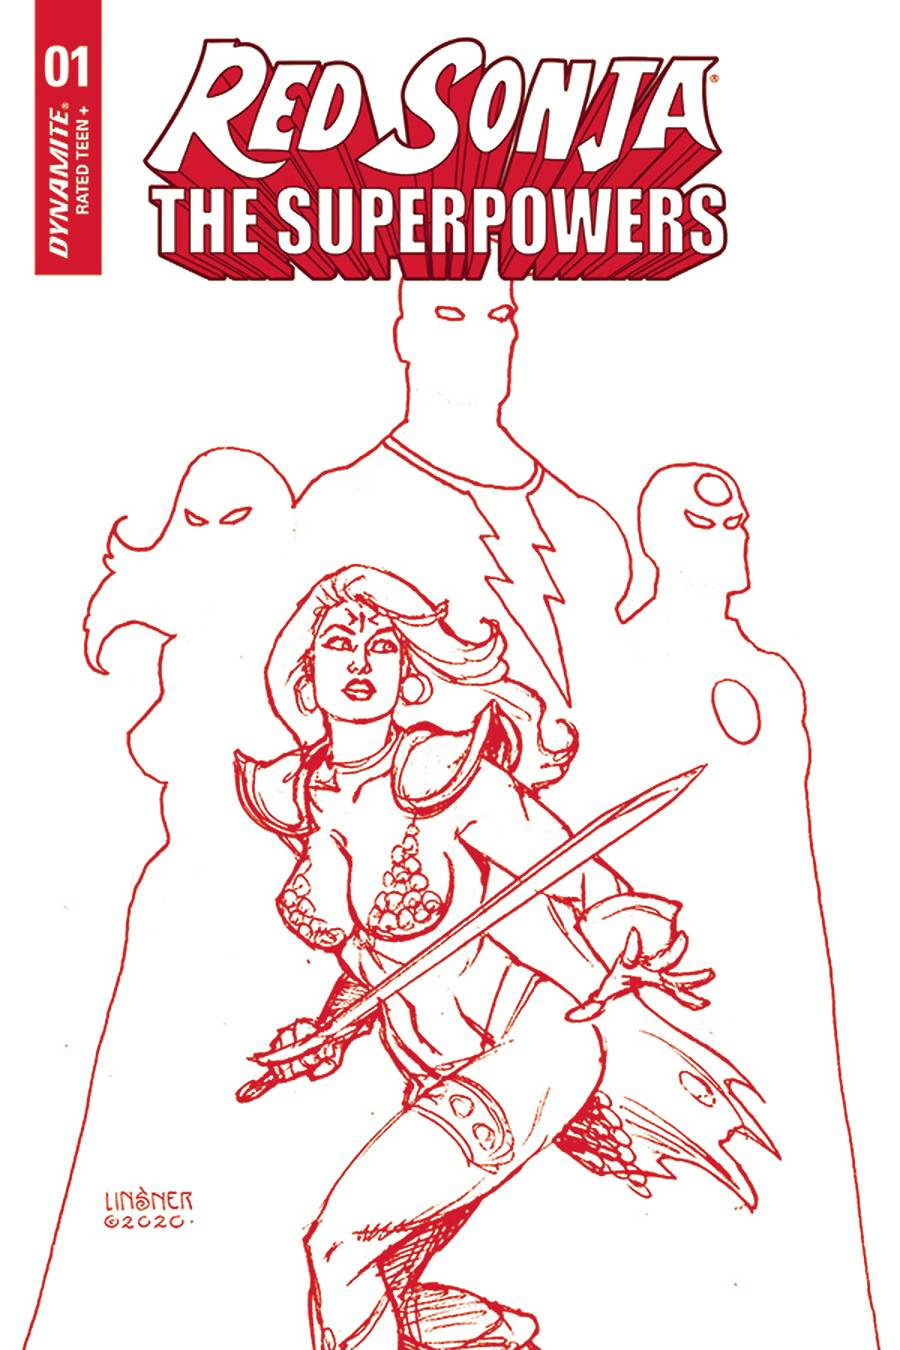 RED SONJA THE SUPERPOWERS #1 LINSNER CRIMSON RED ART CVR